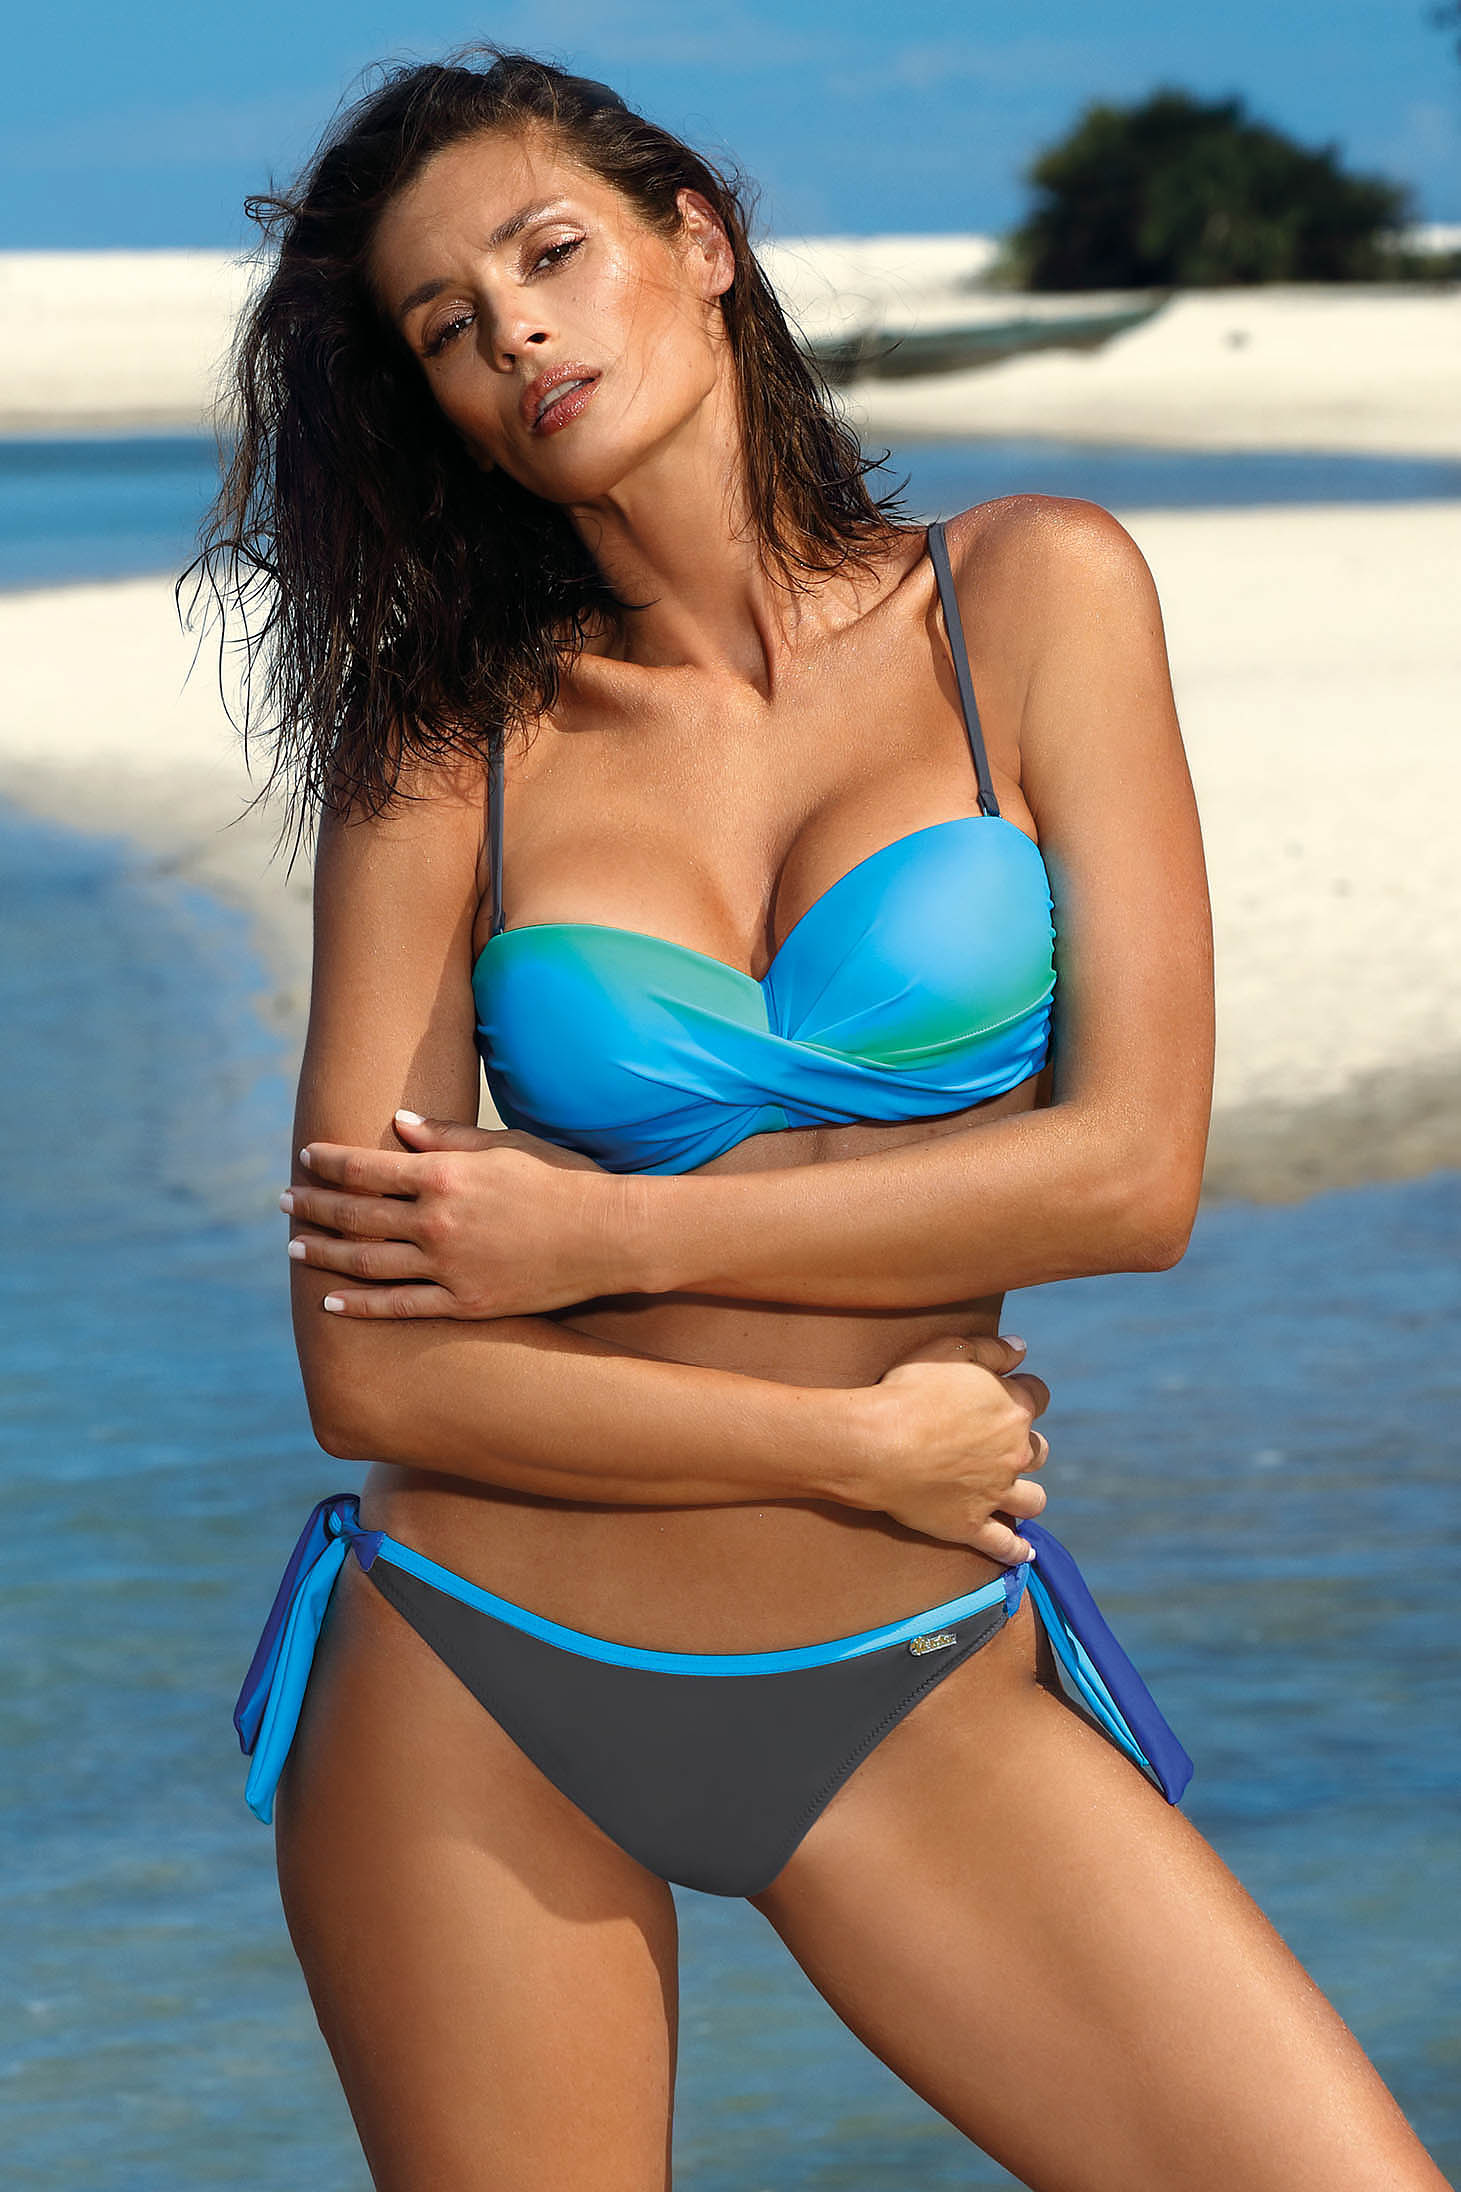 Turquoise swimsuit from two pieces with balconette bra push-up effect with classic bottoms